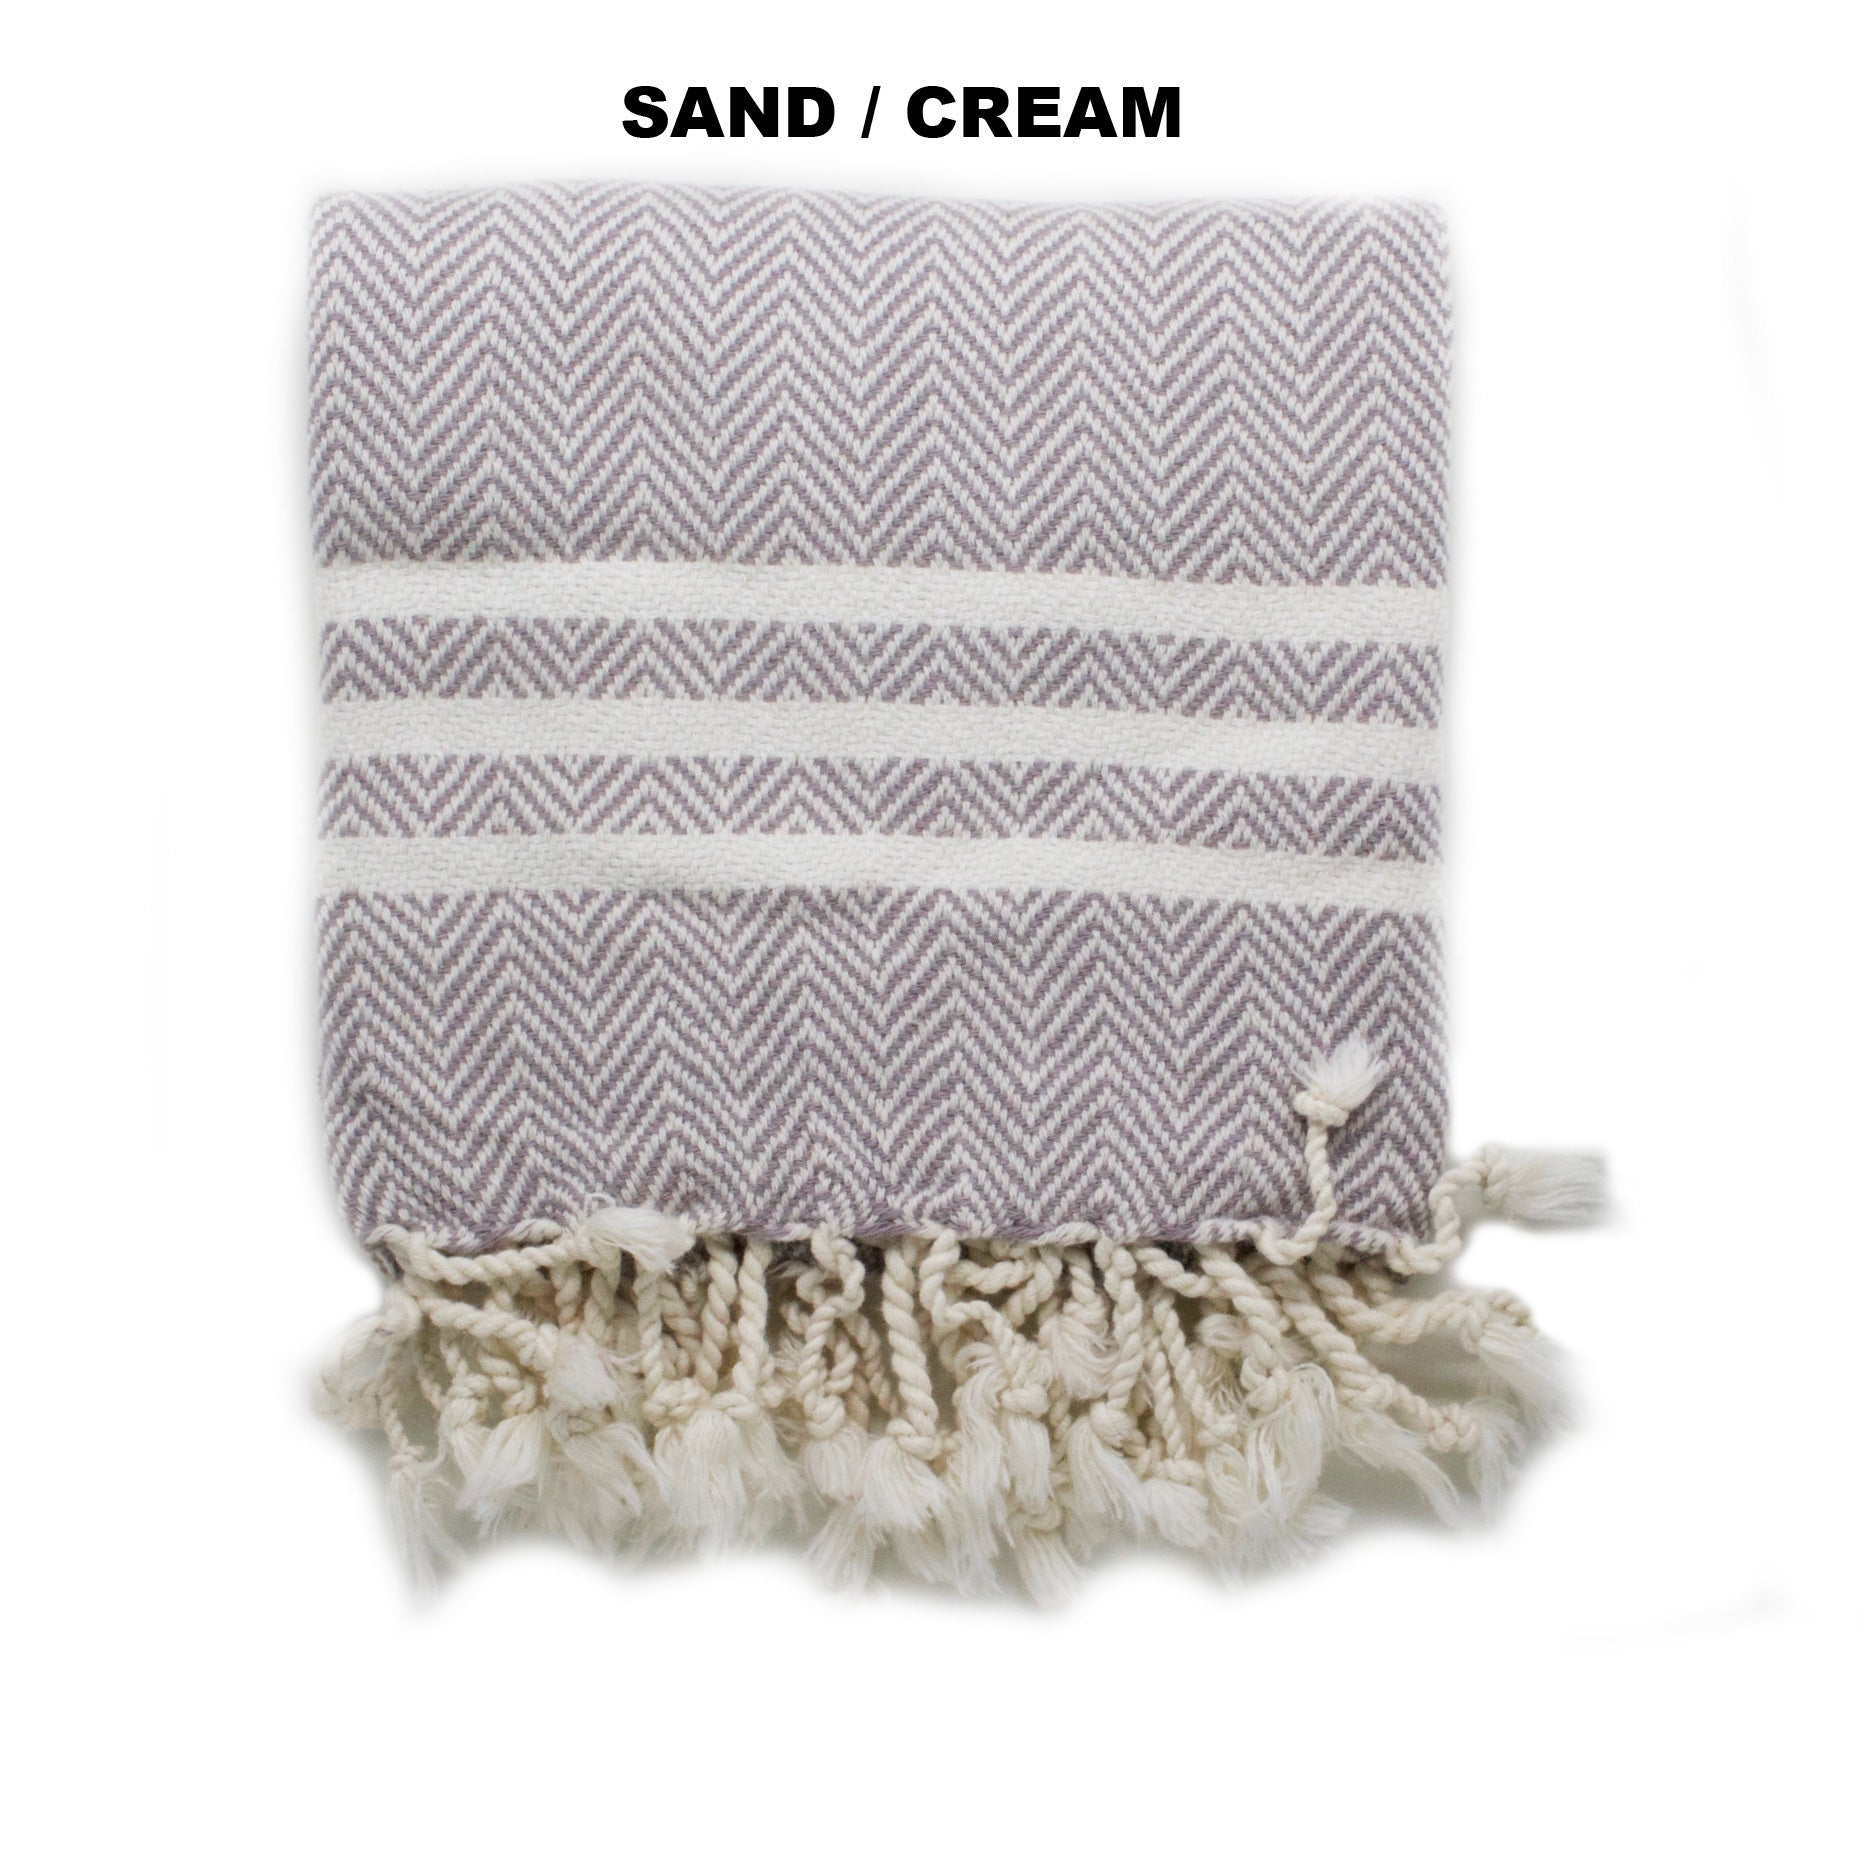 iL CANE - Twofer Towel S/M Chevron Pattern